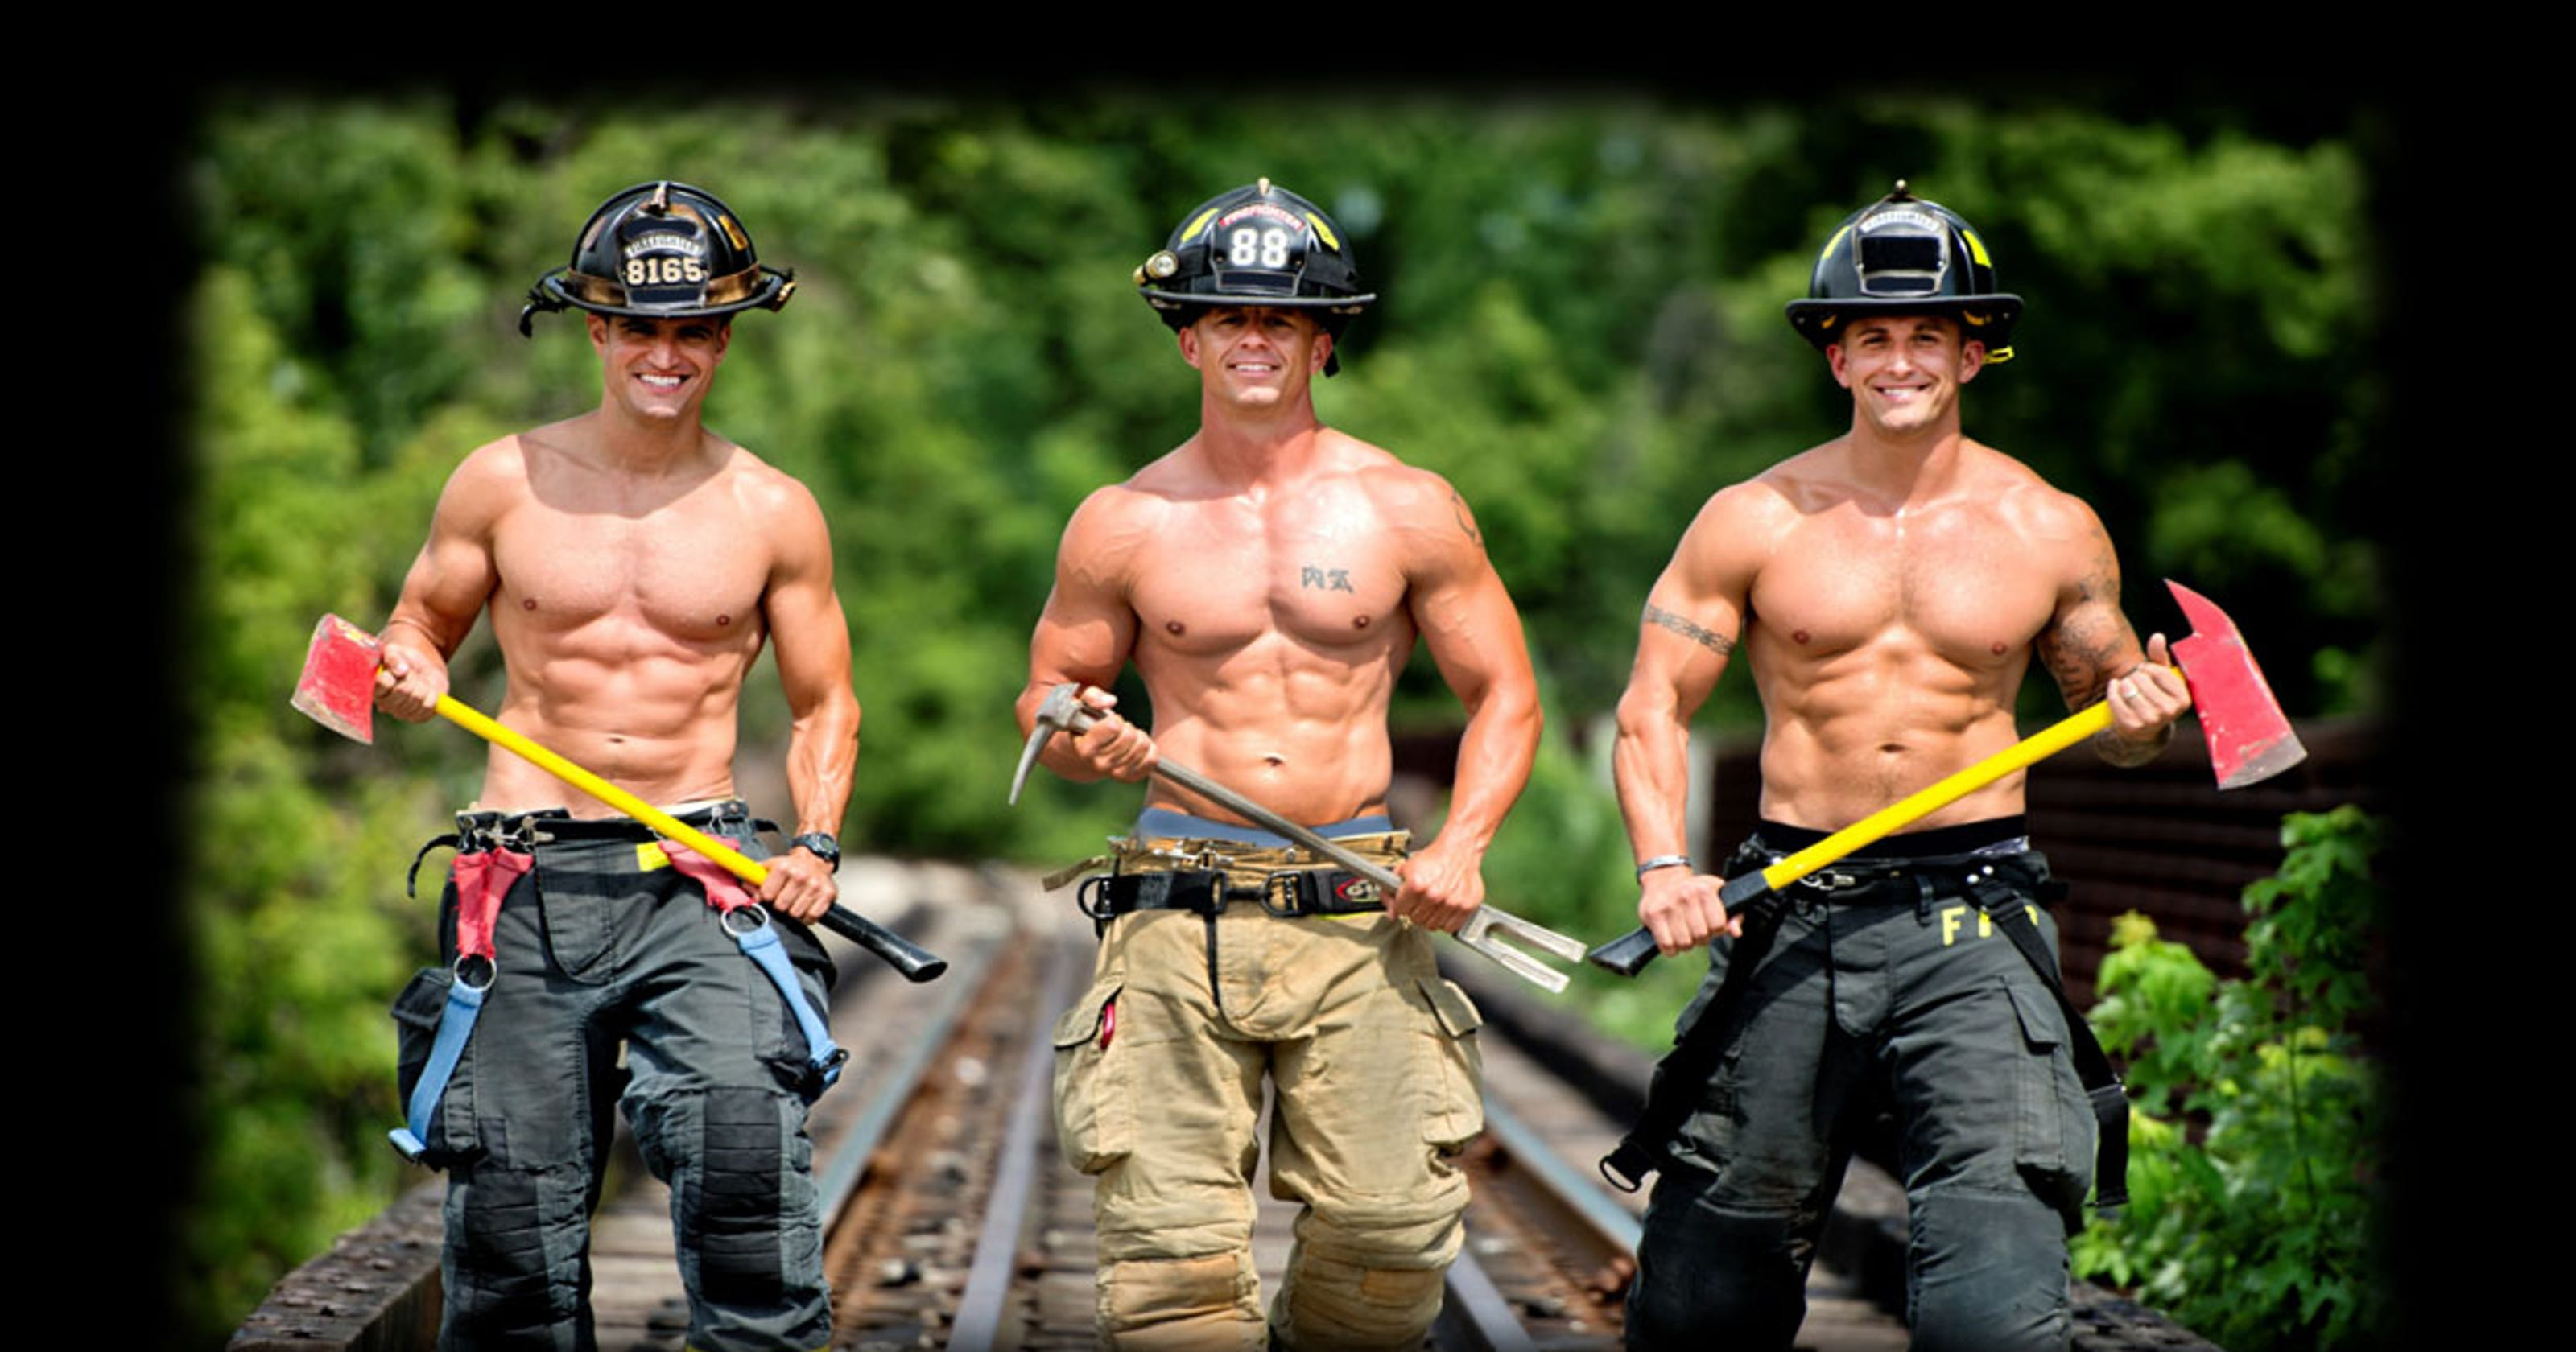 Hamilton County firefighters strip for the greater good